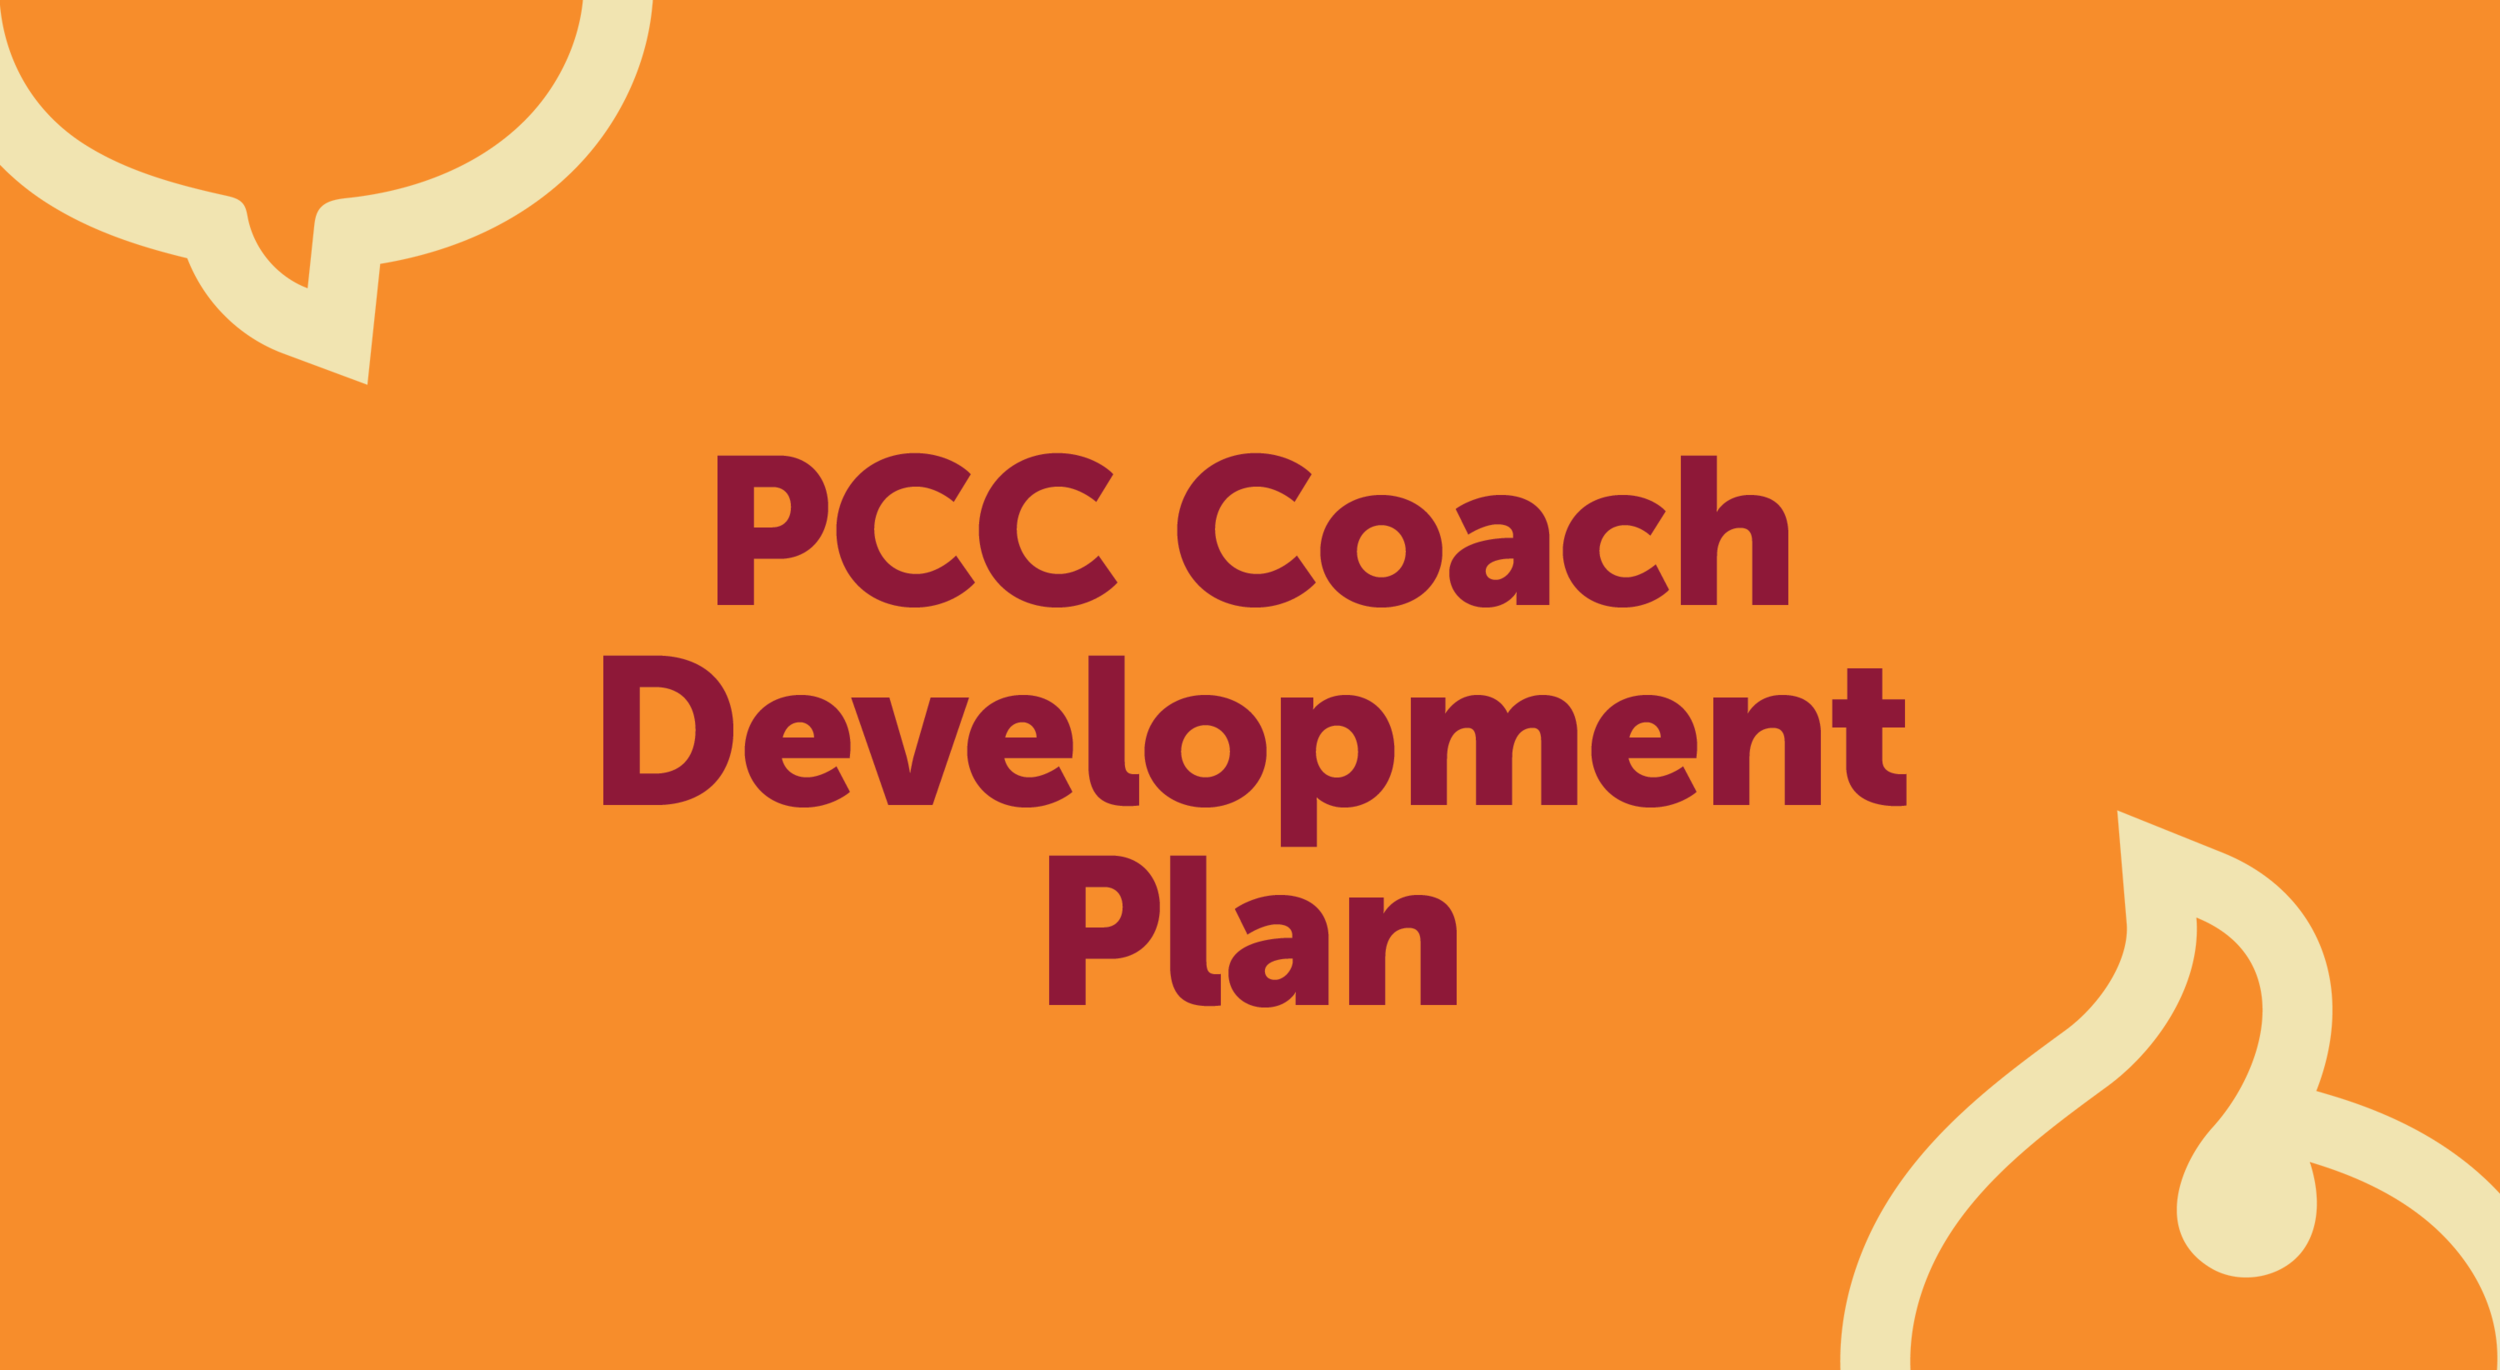 Look at the competencies and create a plan that has 3 areas of focus for what you want to develop as a professional coach.